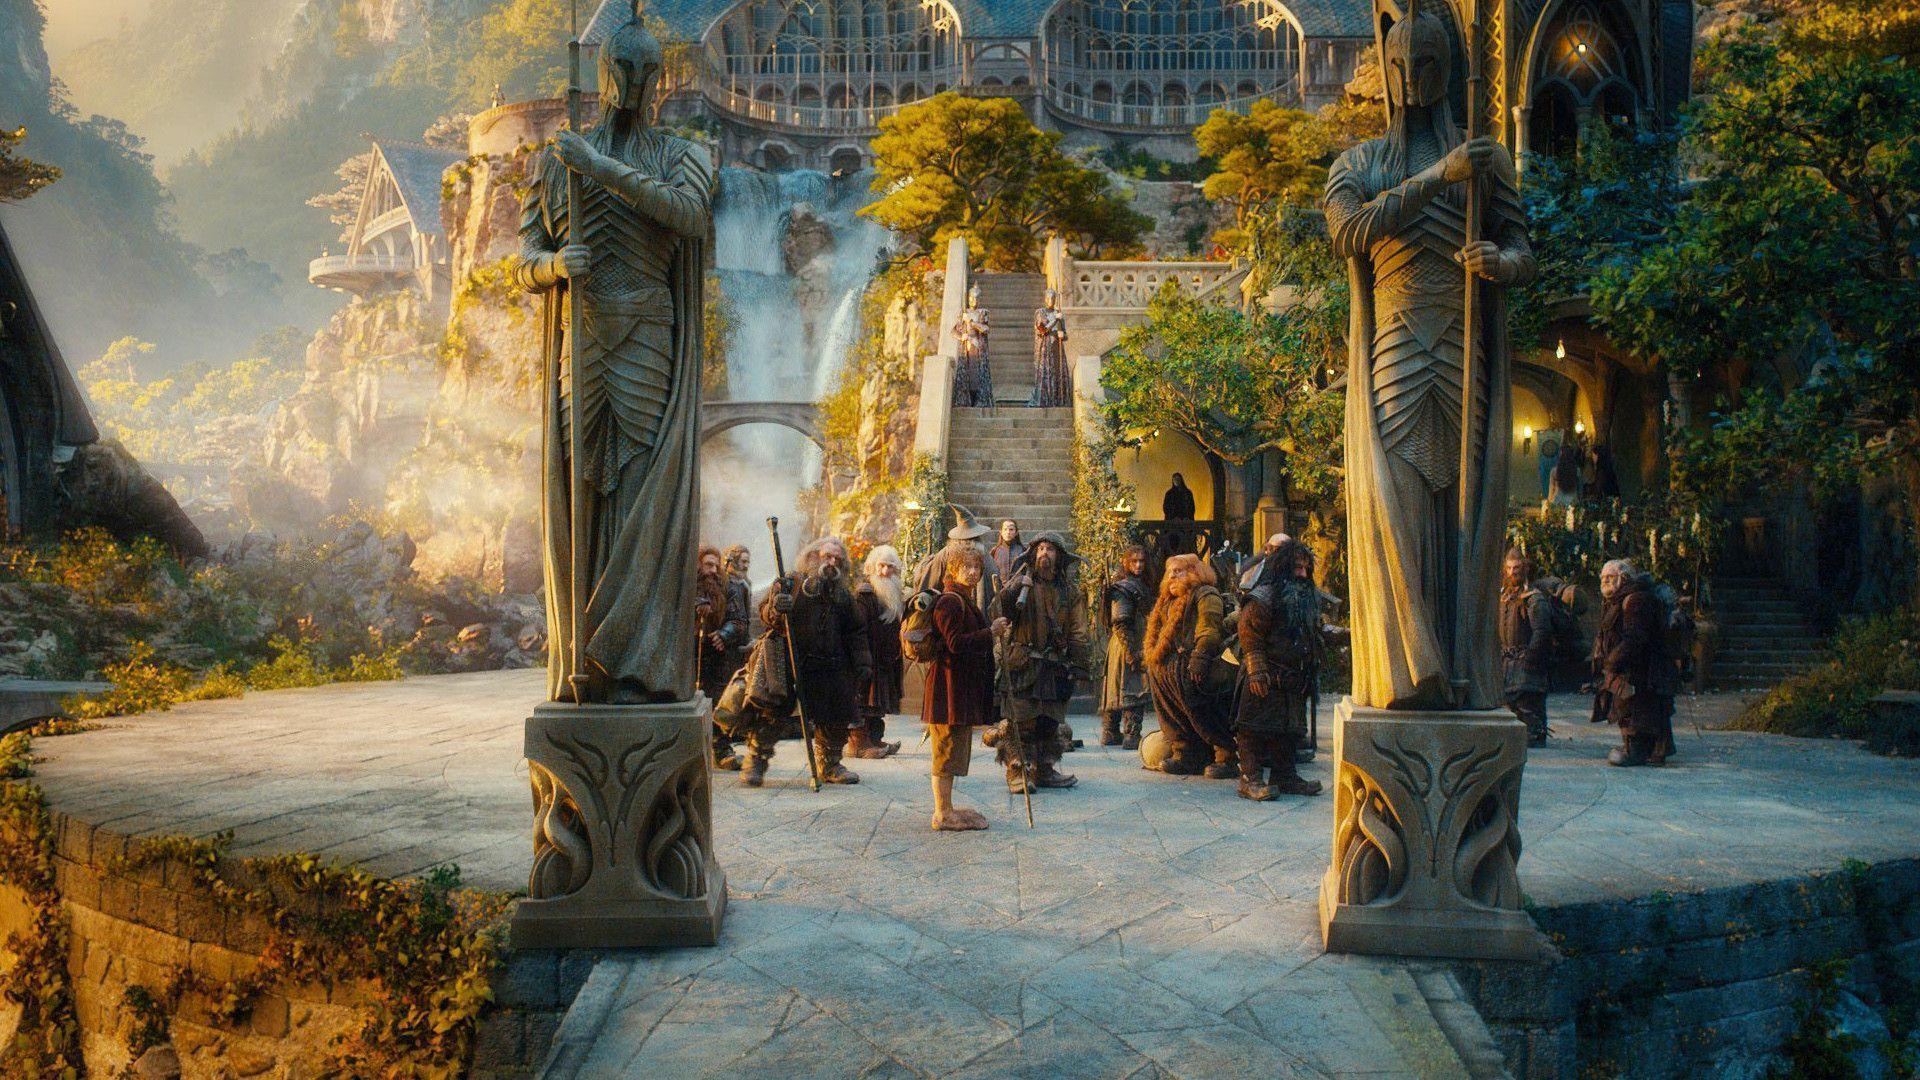 rivendell wallpaper - photo #24